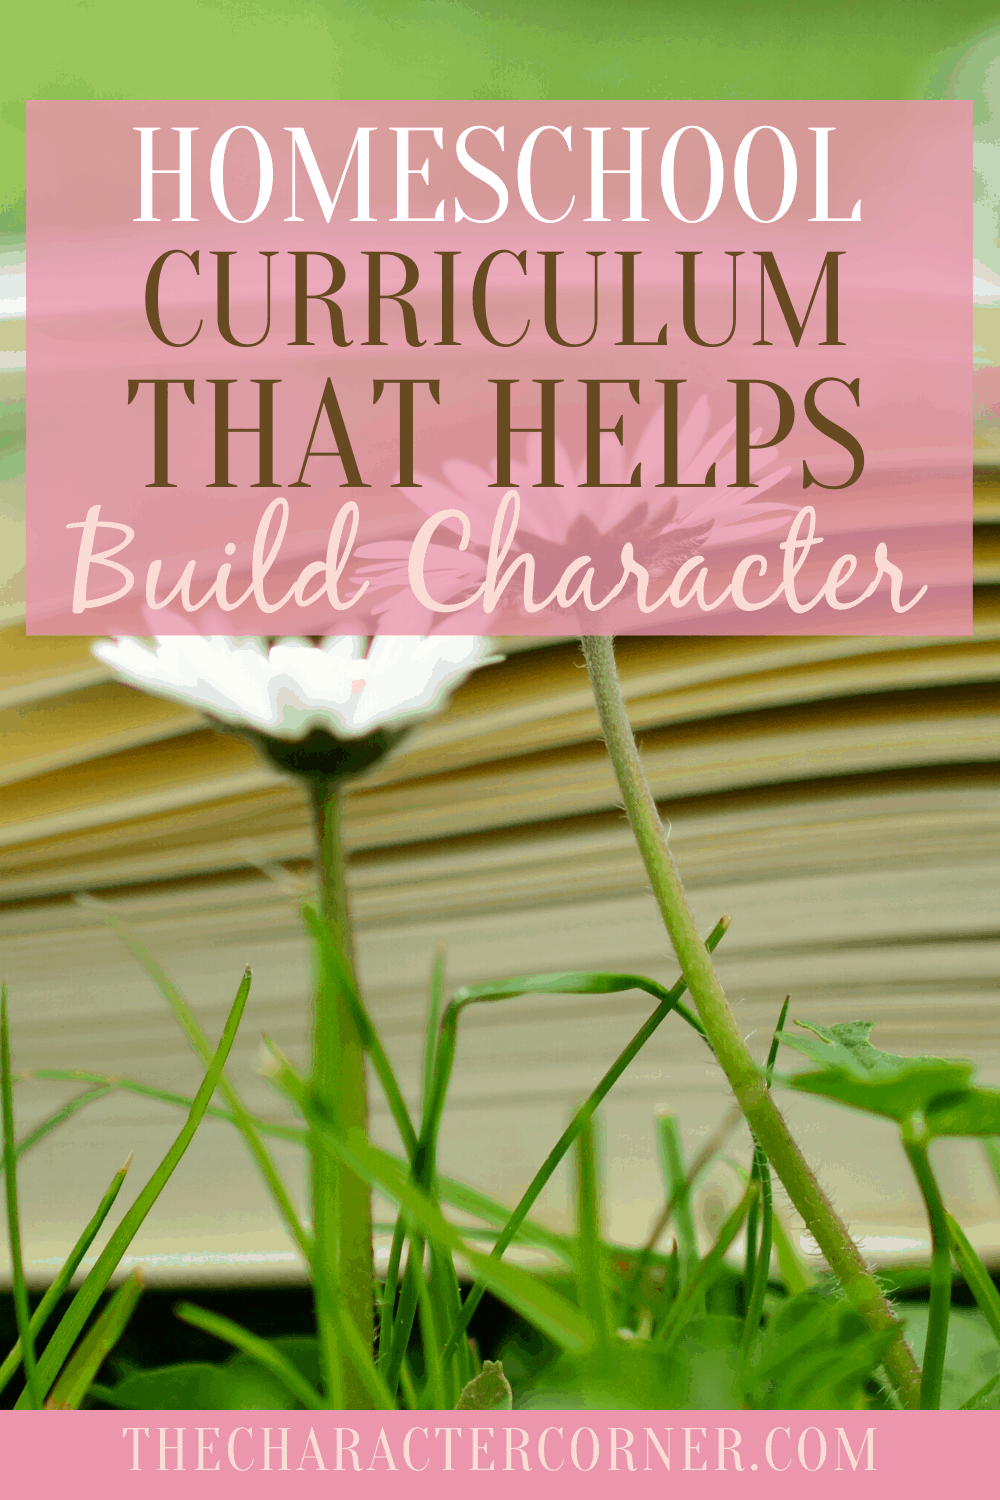 curriculum that builds character